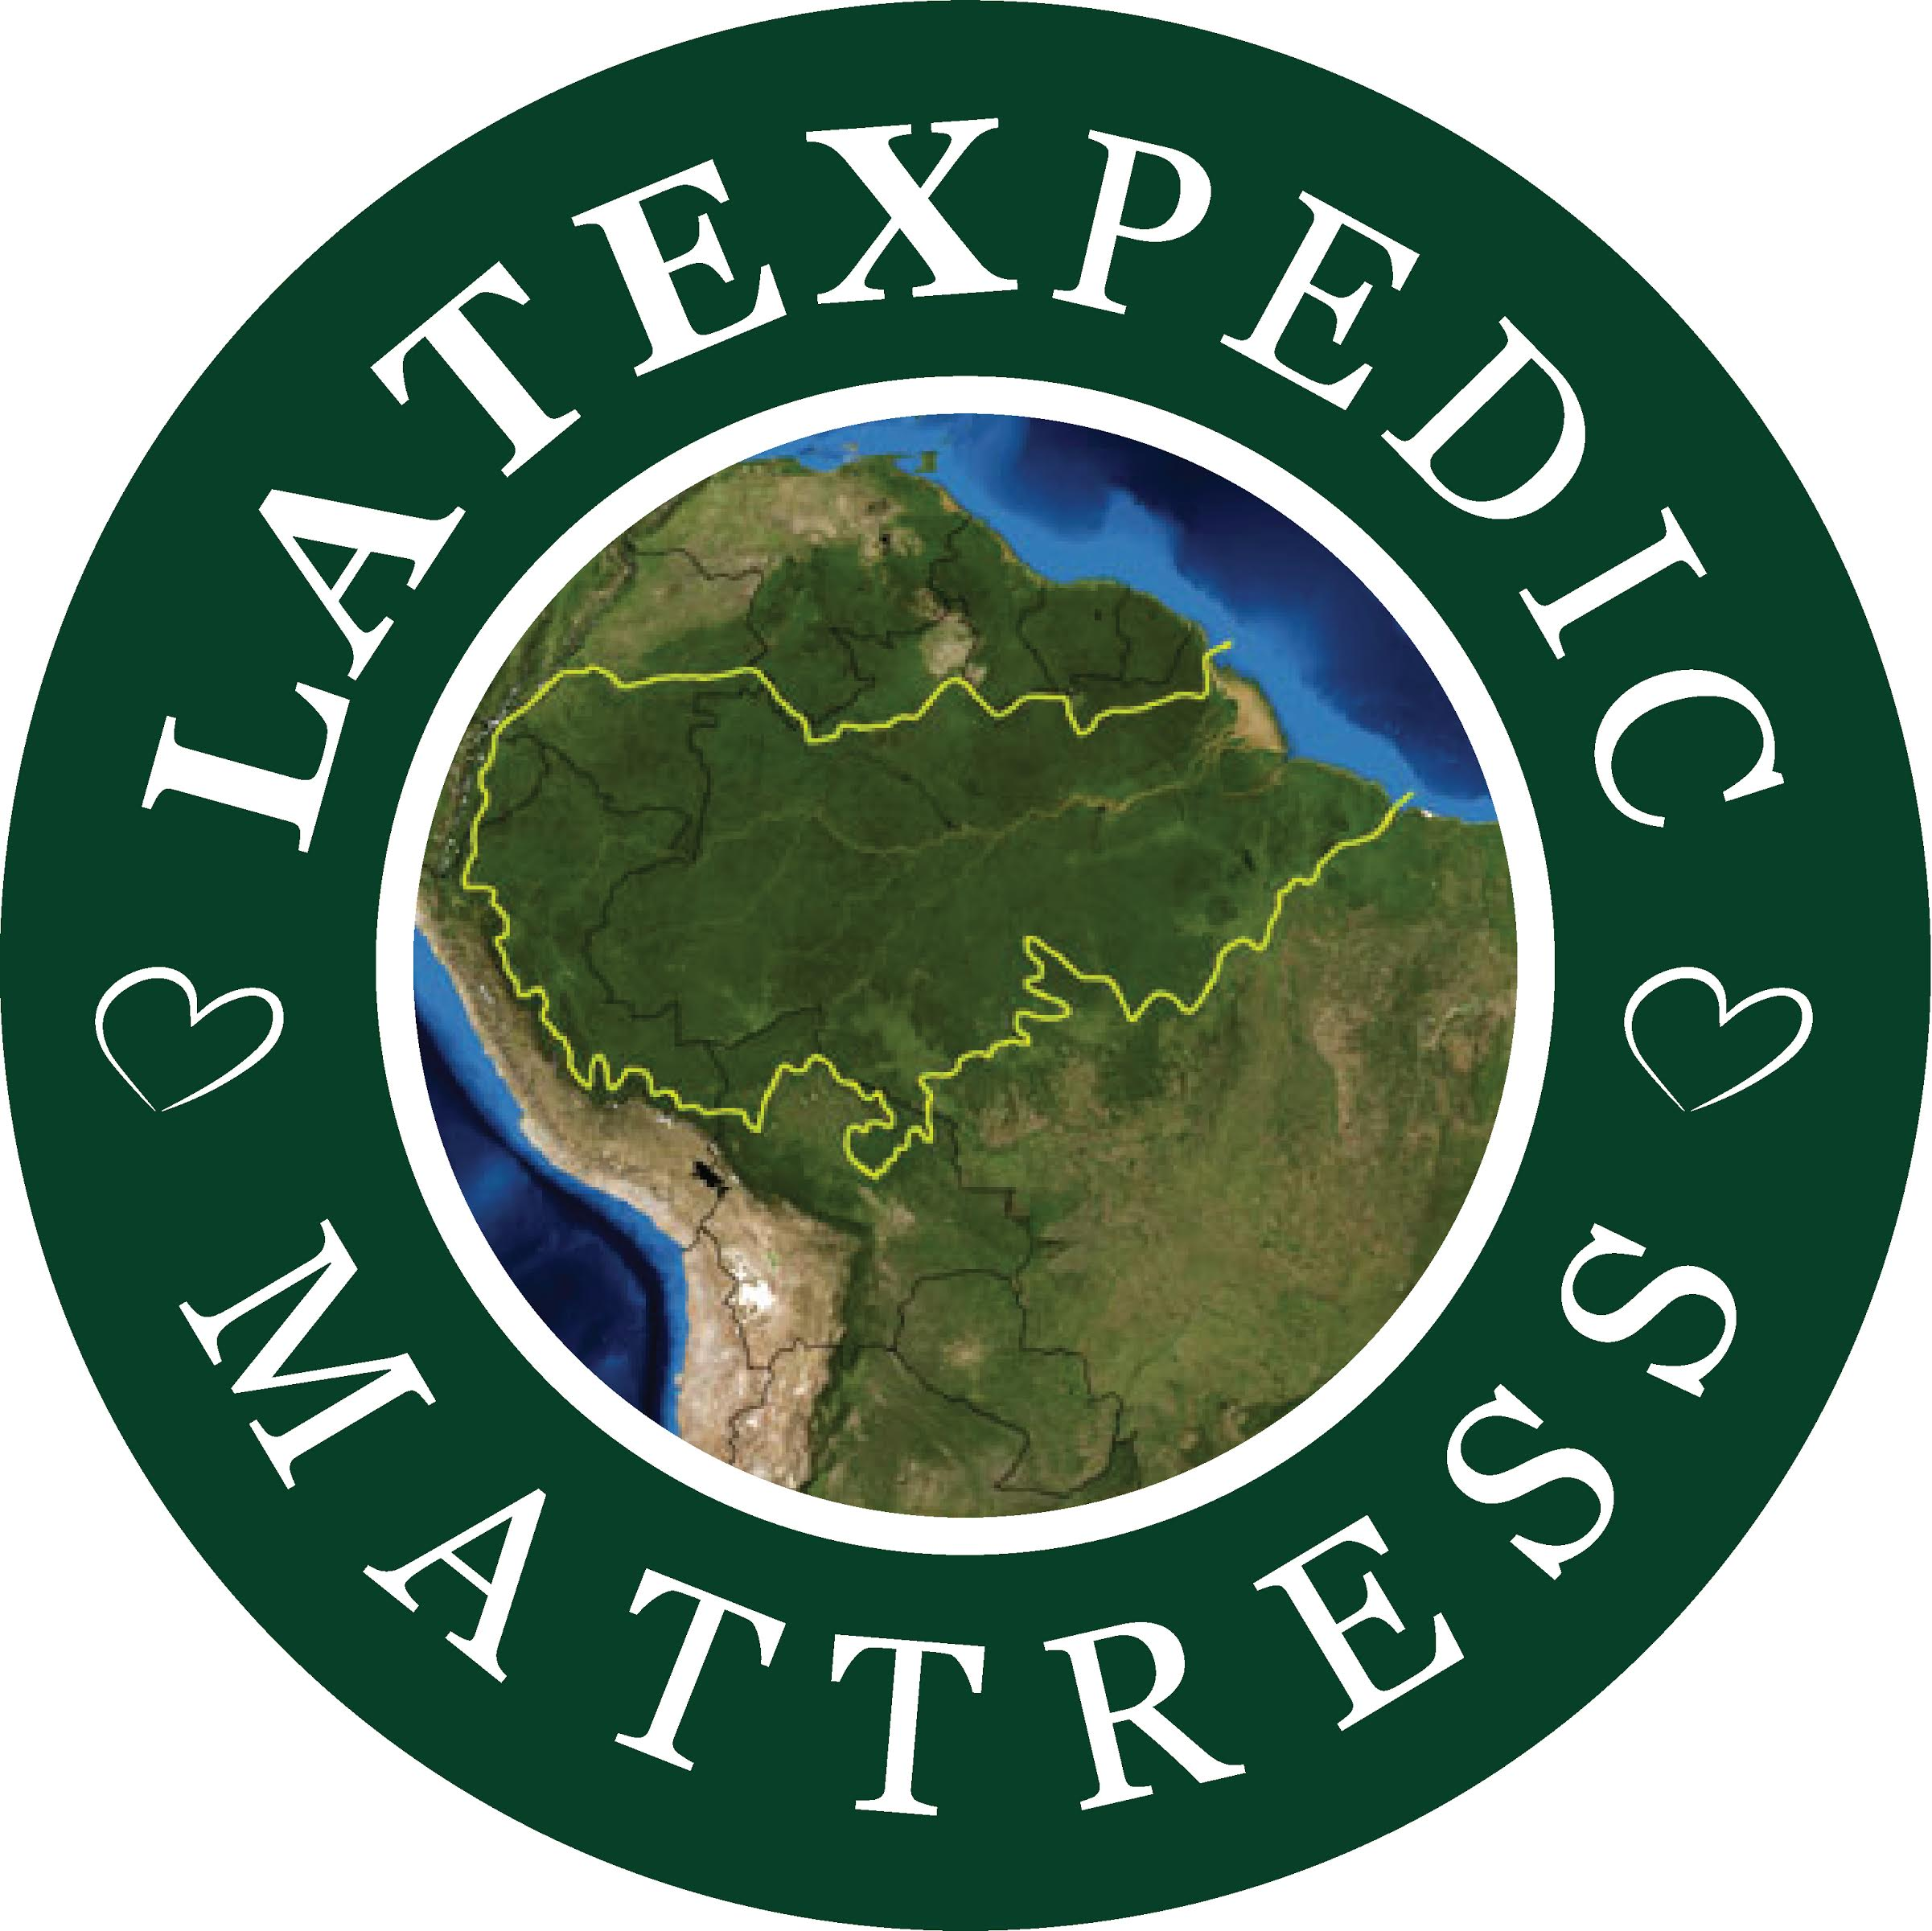 Latex Mattresses are originally native to the Amazon Rainforest